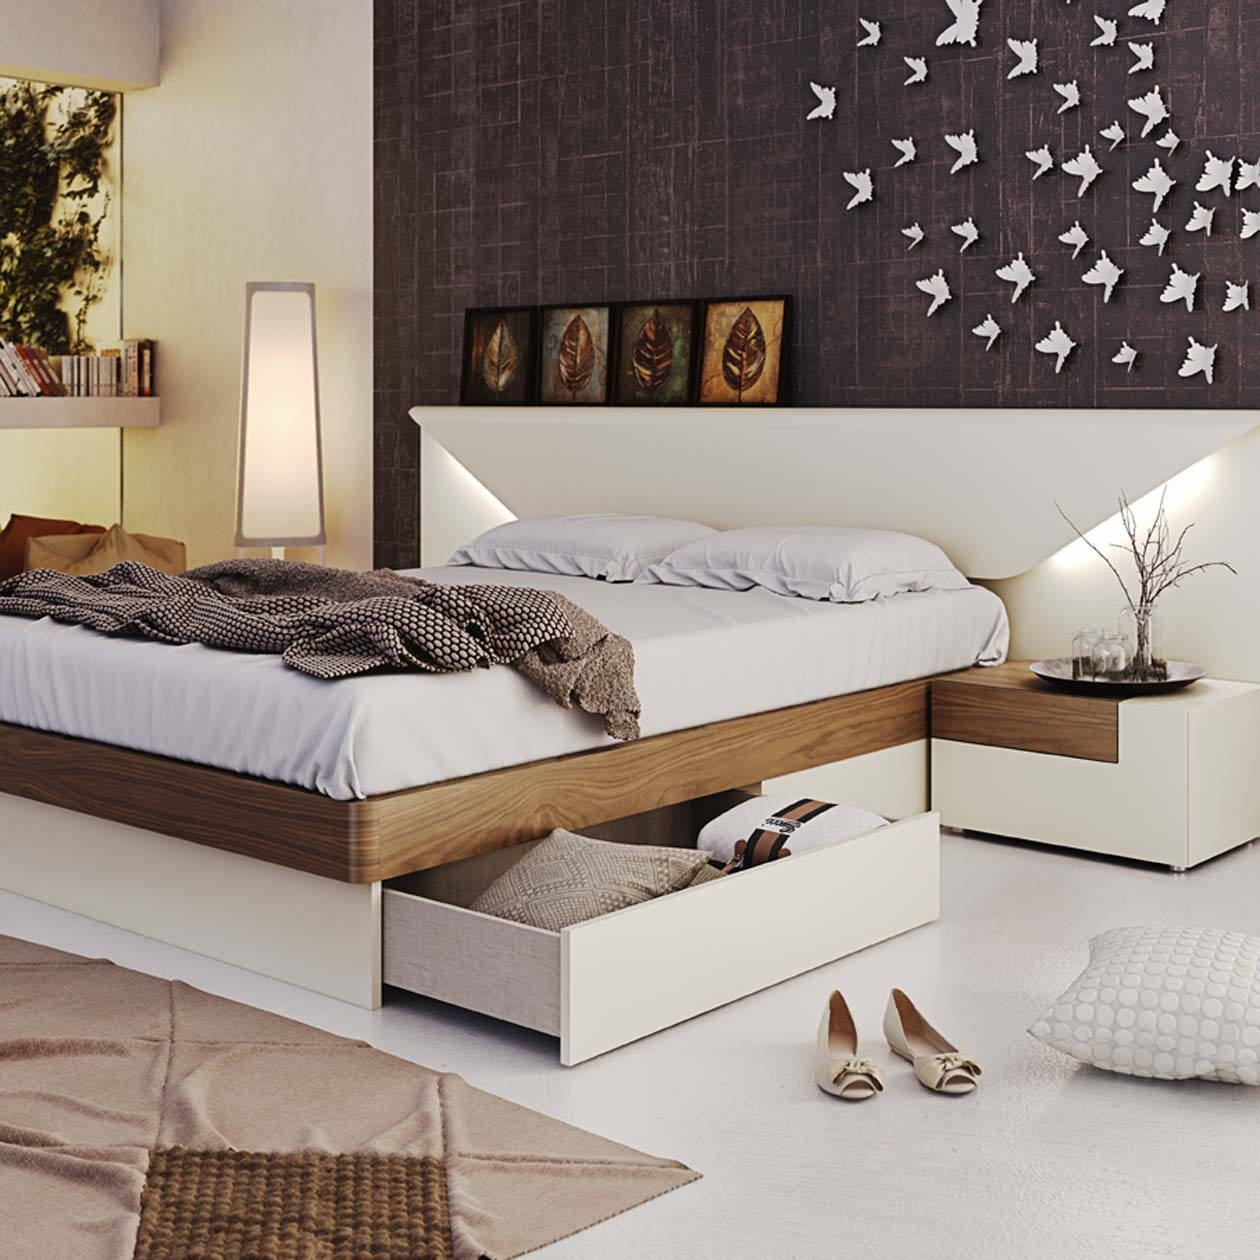 elena modern italian bedroom set n star modern furniture 16381 | bedroom furniture modern bedrooms elena side 5 1